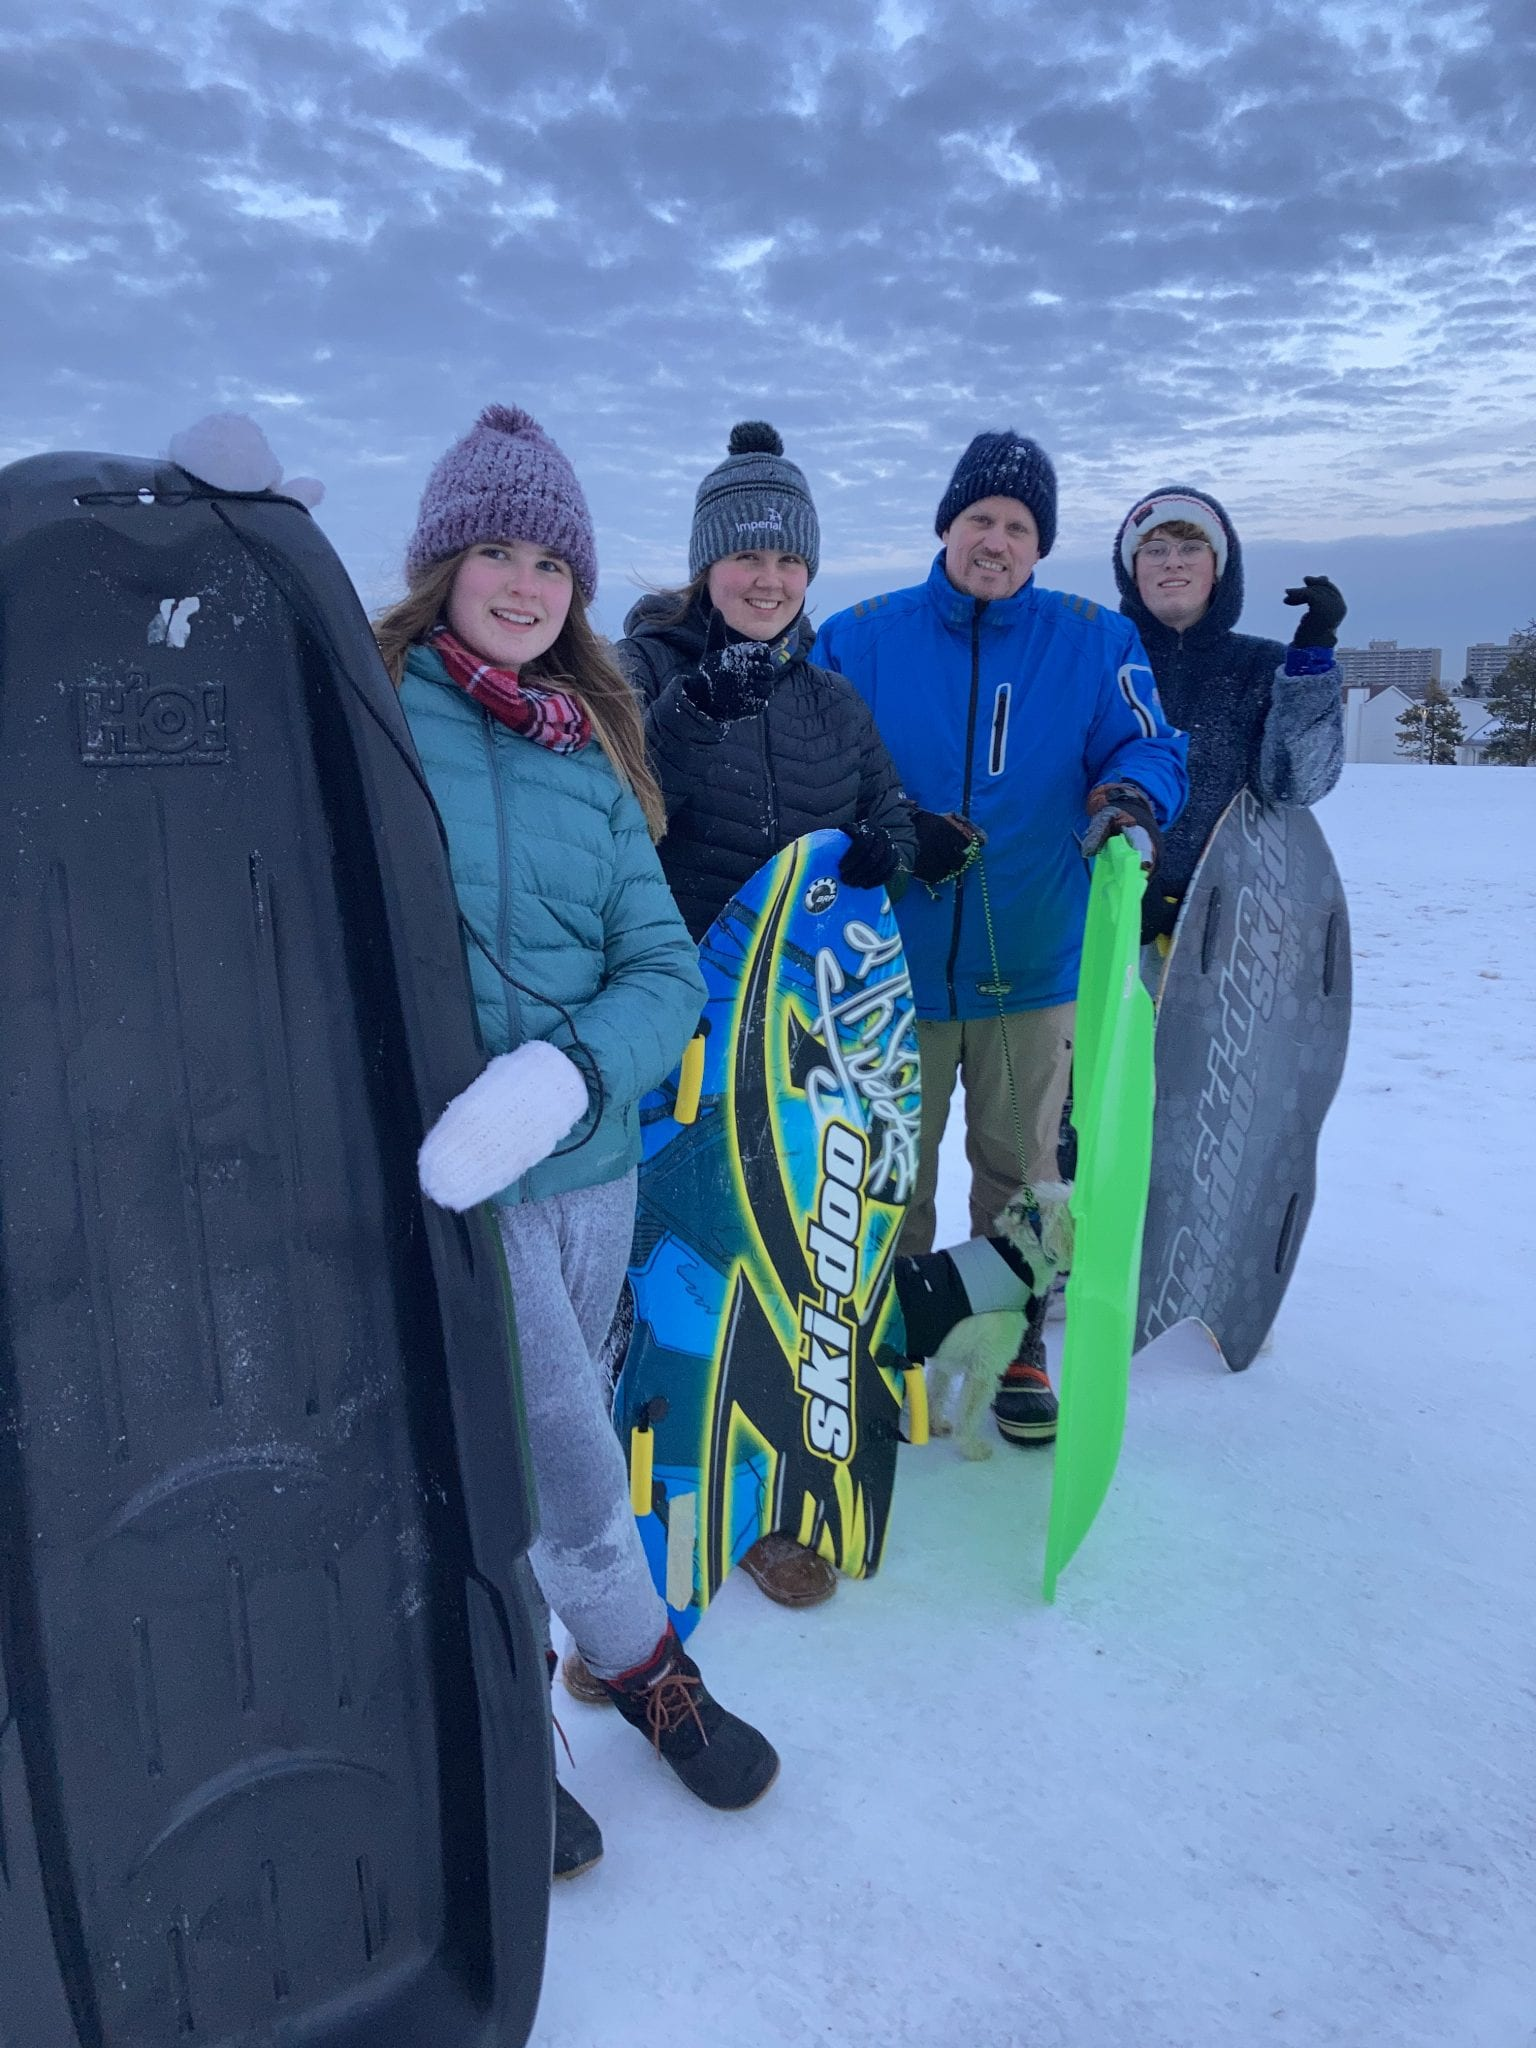 Four people outside wearing winter gear hold sleds and smile for the camera for Family Day.